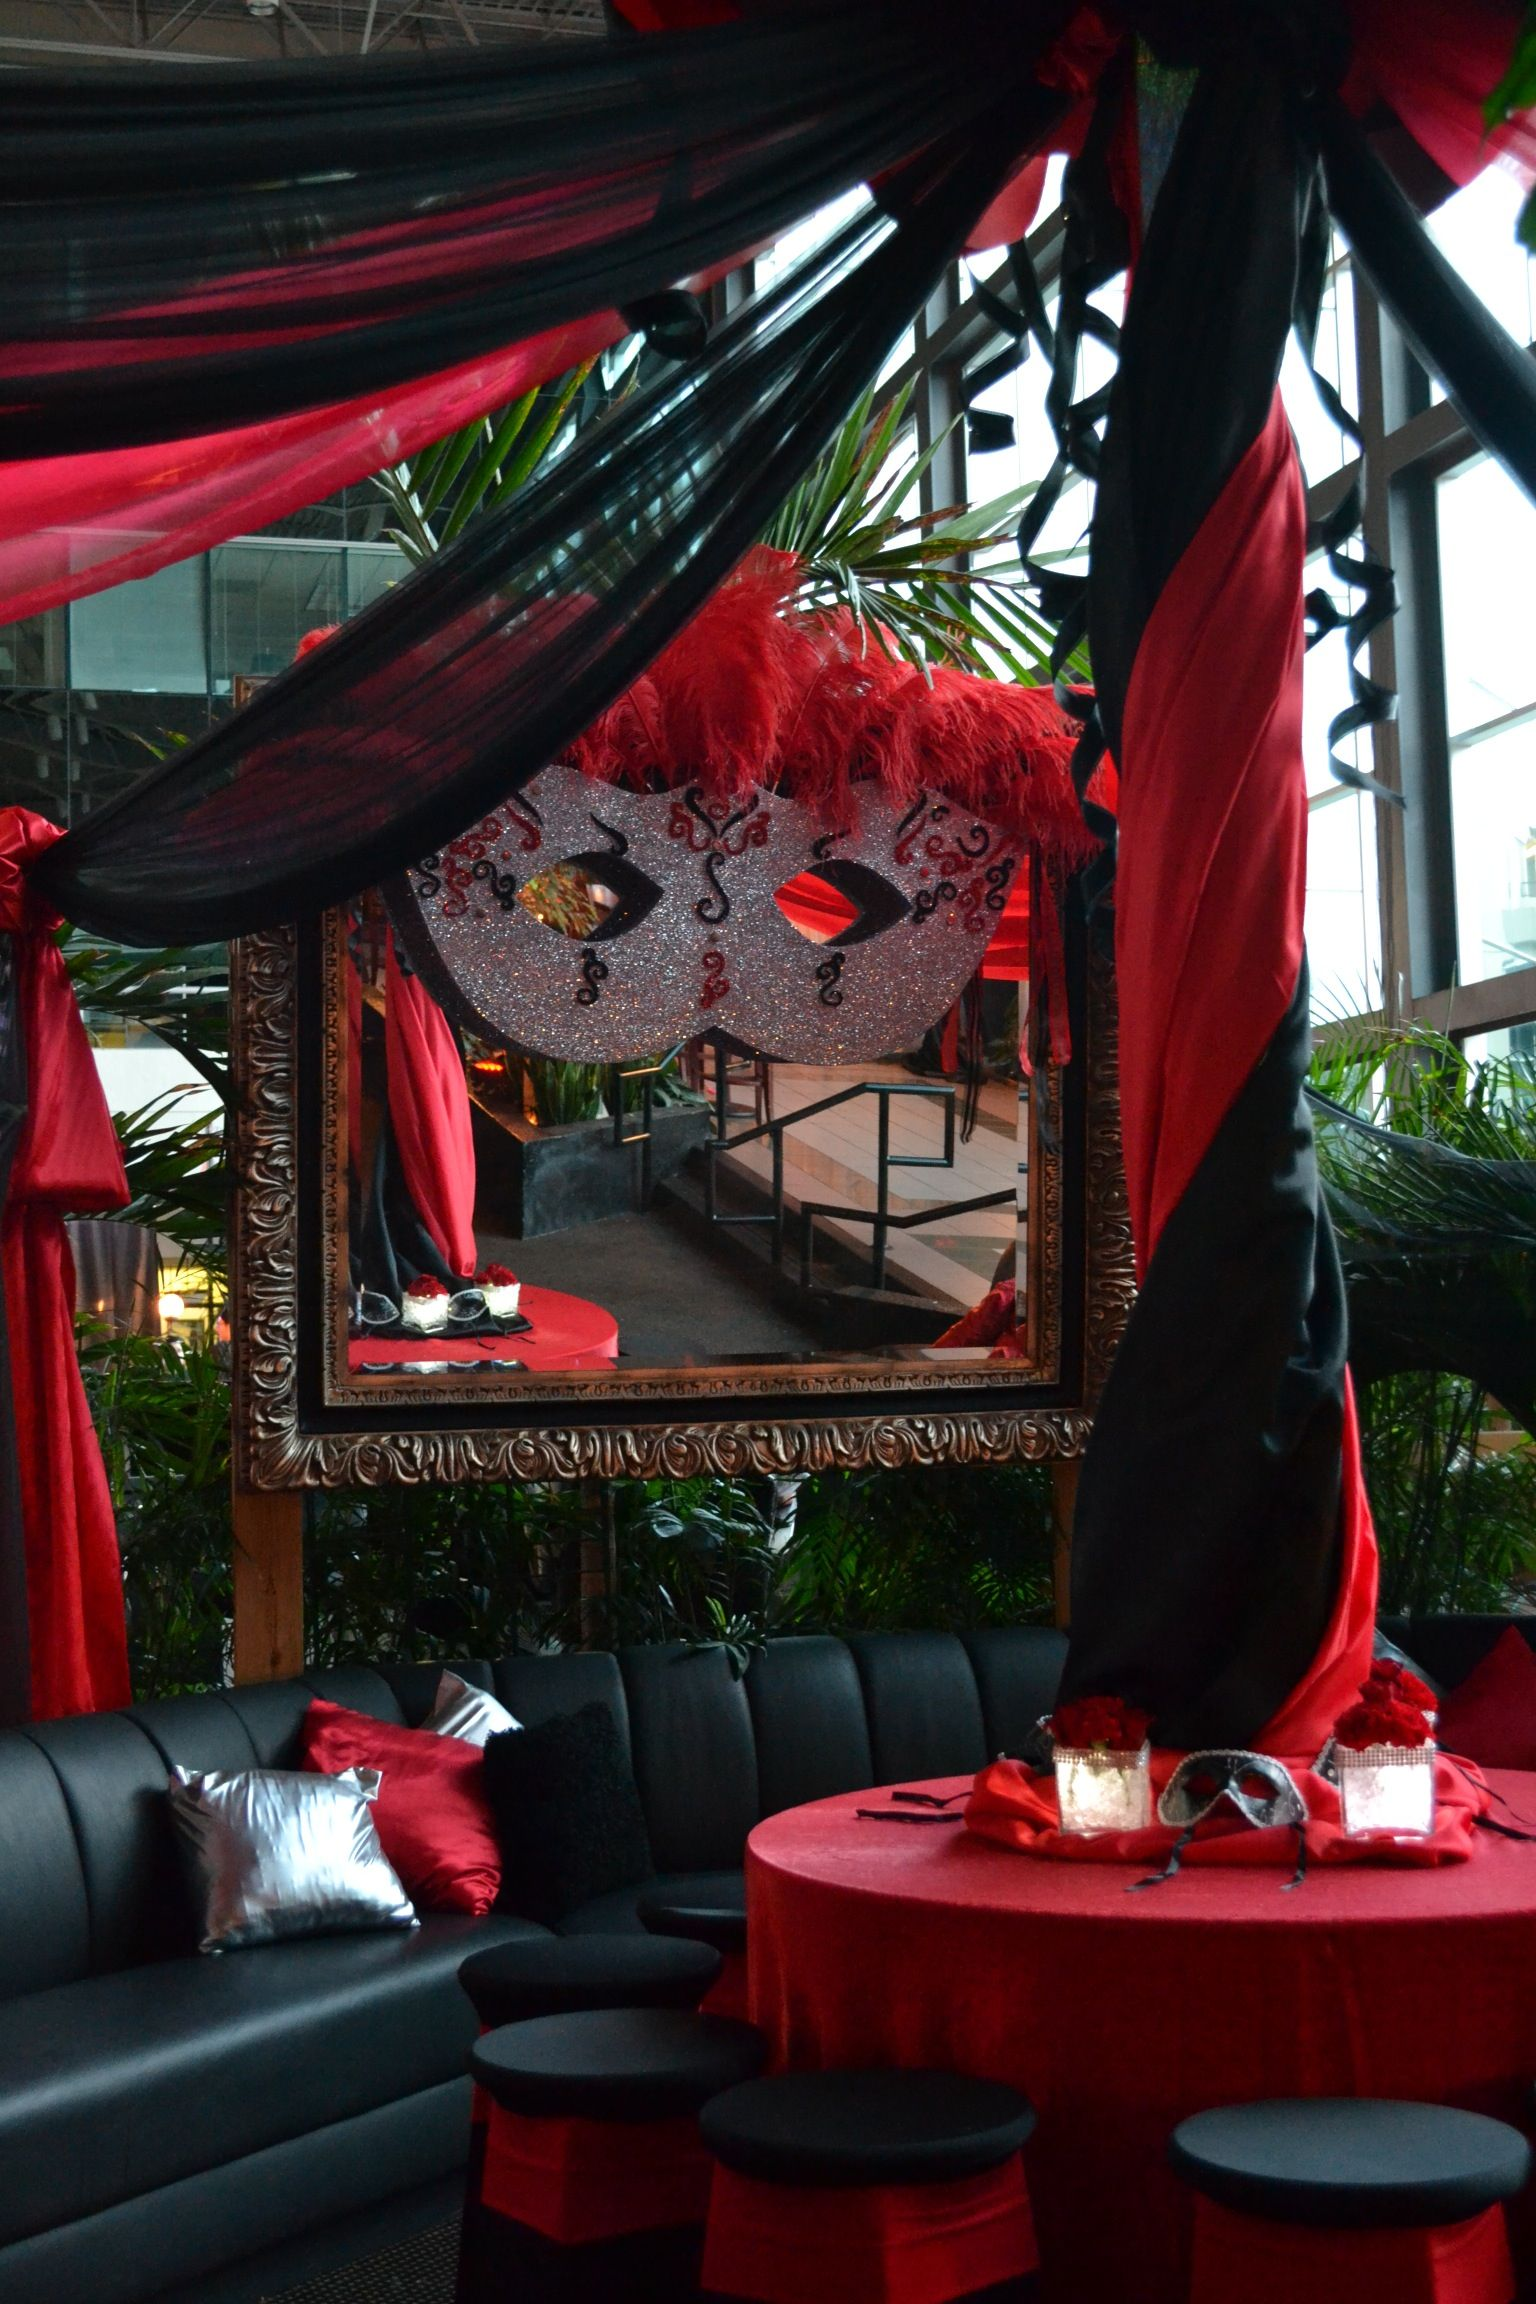 red and black decor at a masquerade ball party. Black Bedroom Furniture Sets. Home Design Ideas